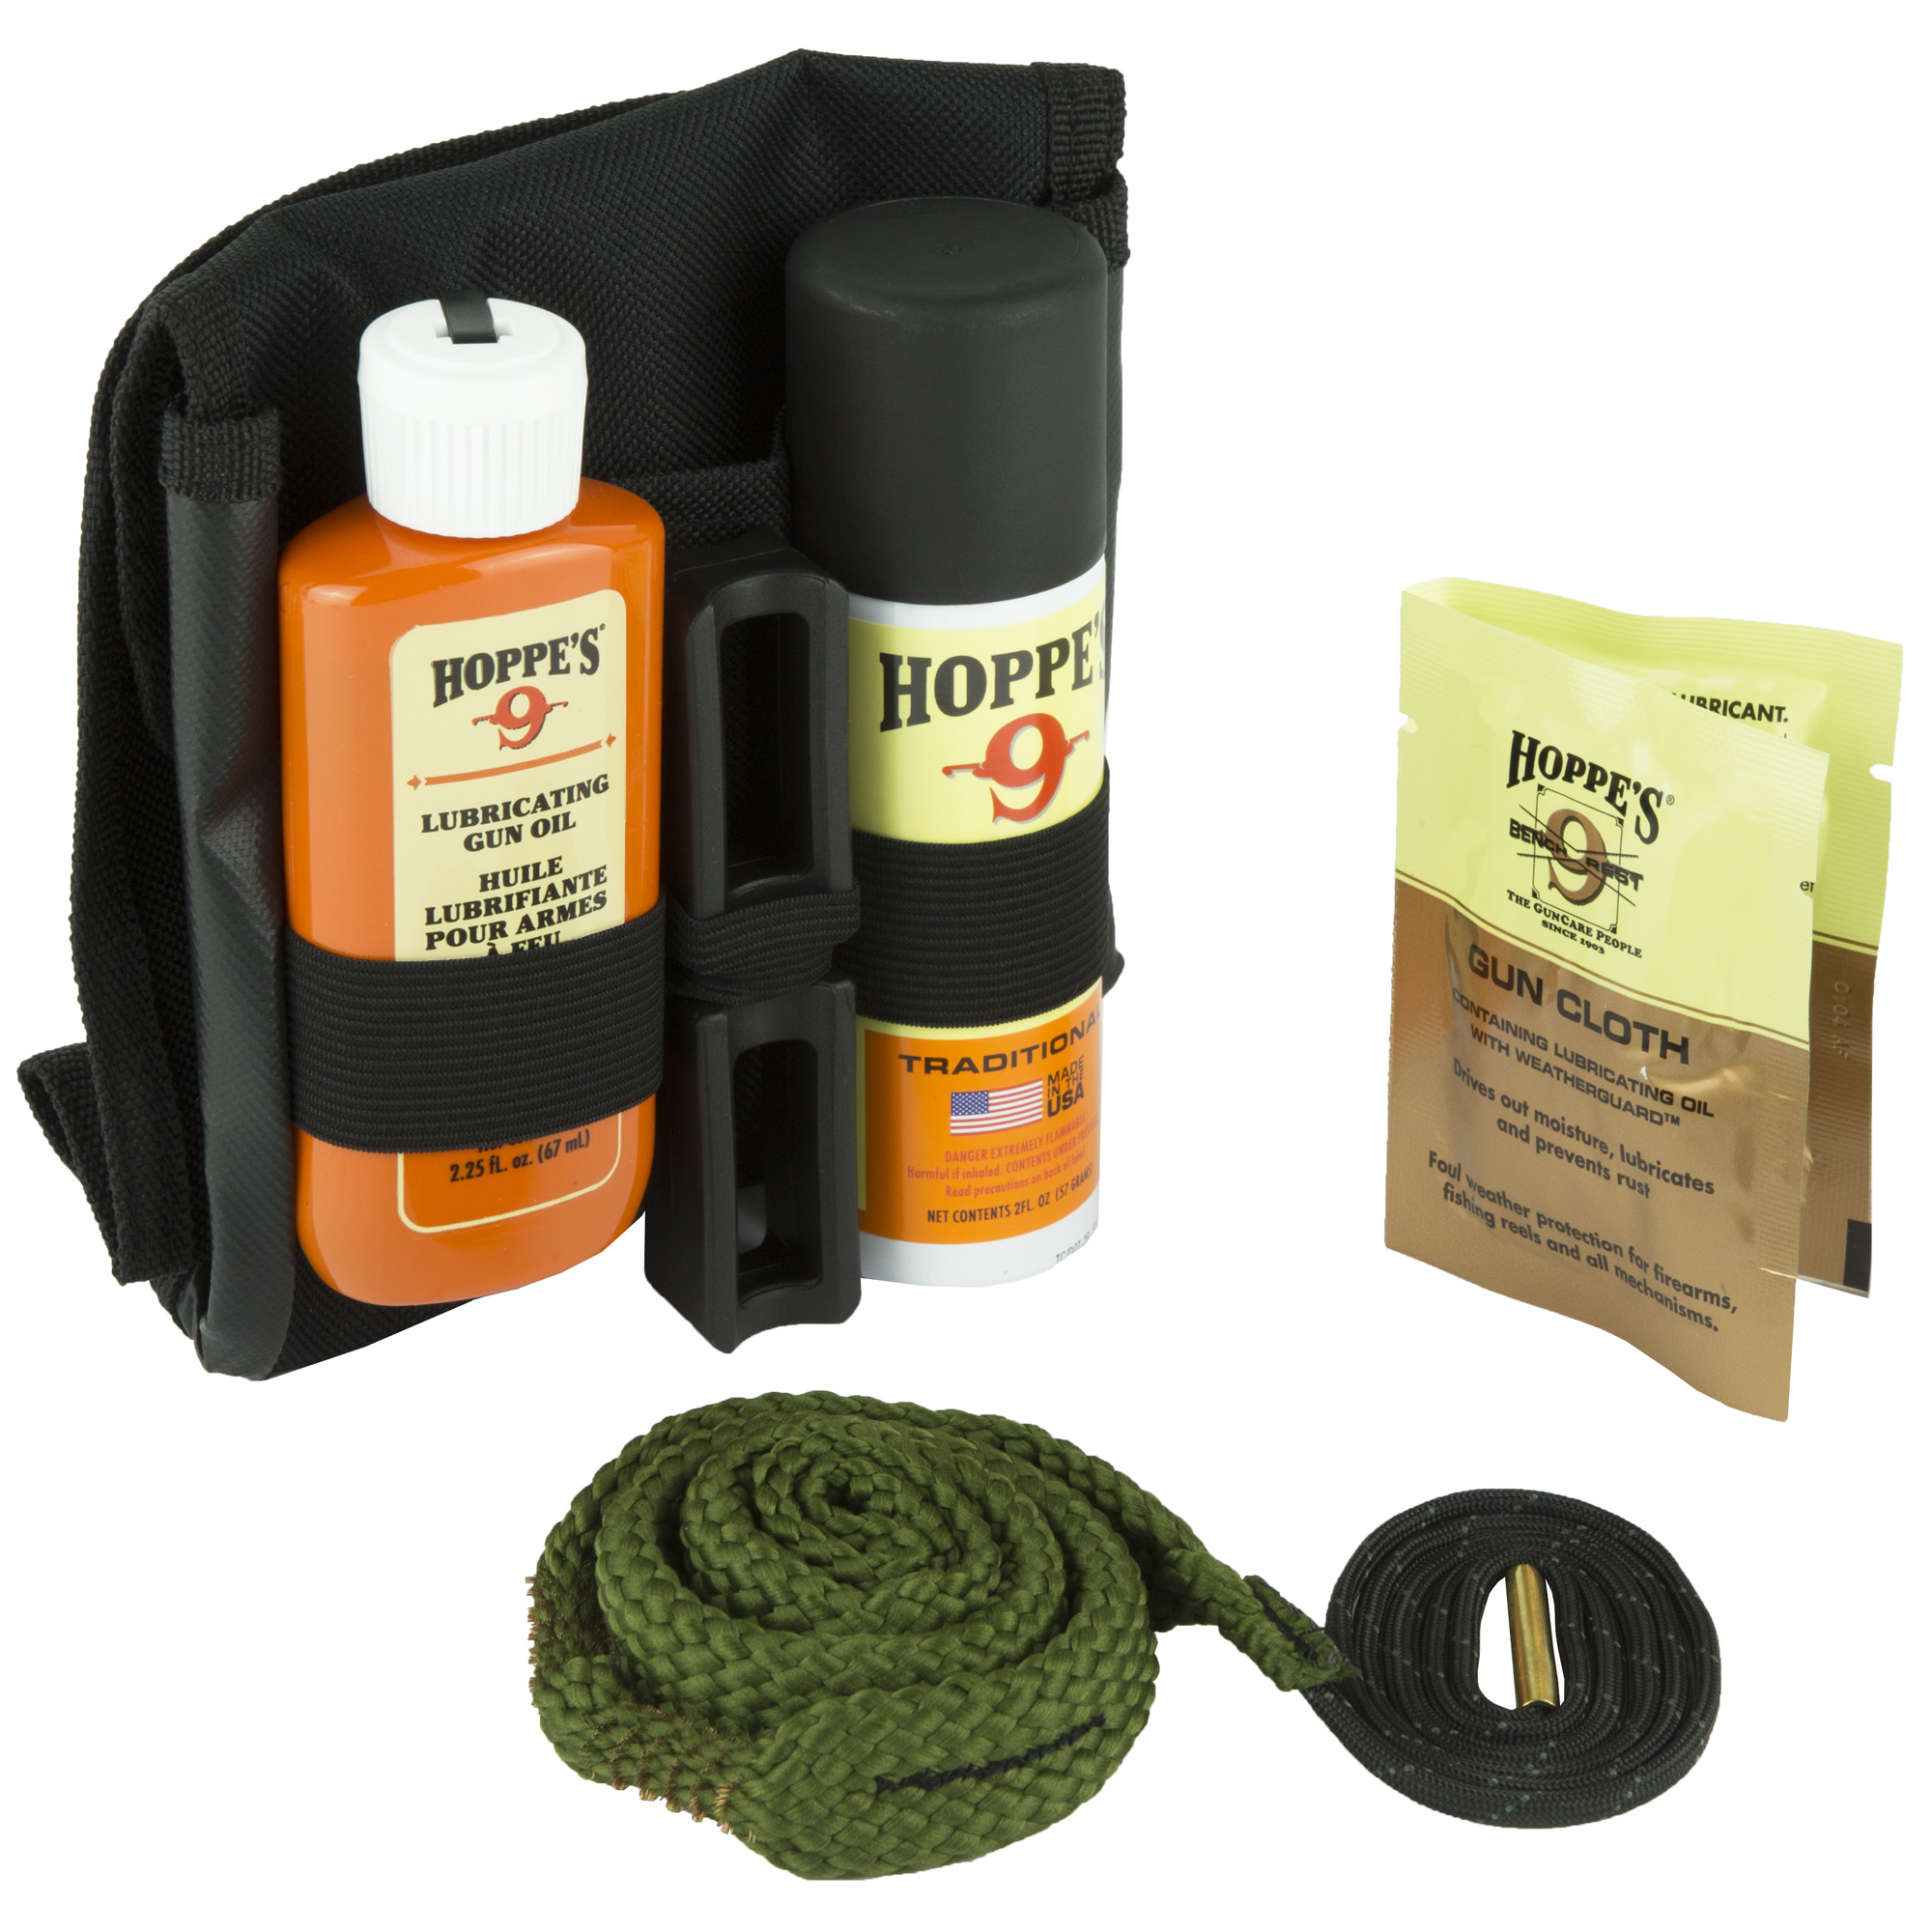 "Take this complete"" super compact BoreSnake Gun Cleaning Kit anywhere. The rugged"" soft-sided case attaches easily to a belt and fits compactly into a box or bag."